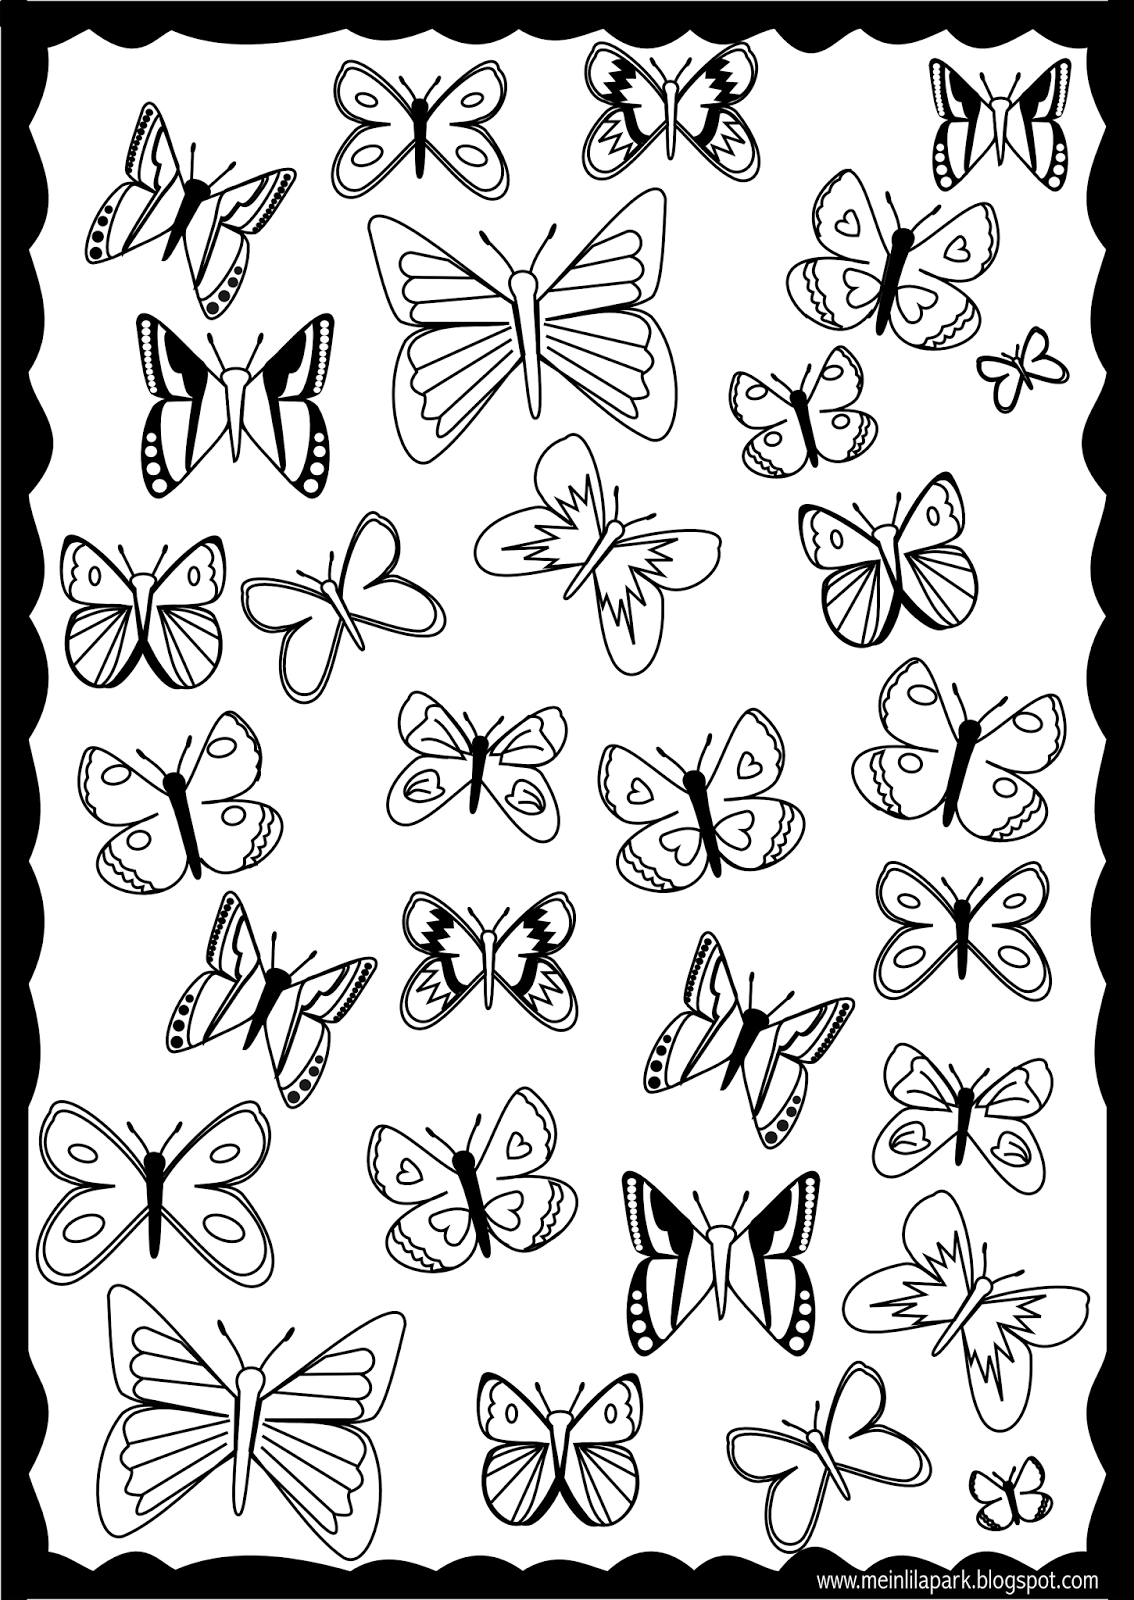 Free Printable Butterfly Coloring Page Ausdruckbare Free Coloring Pages To Print